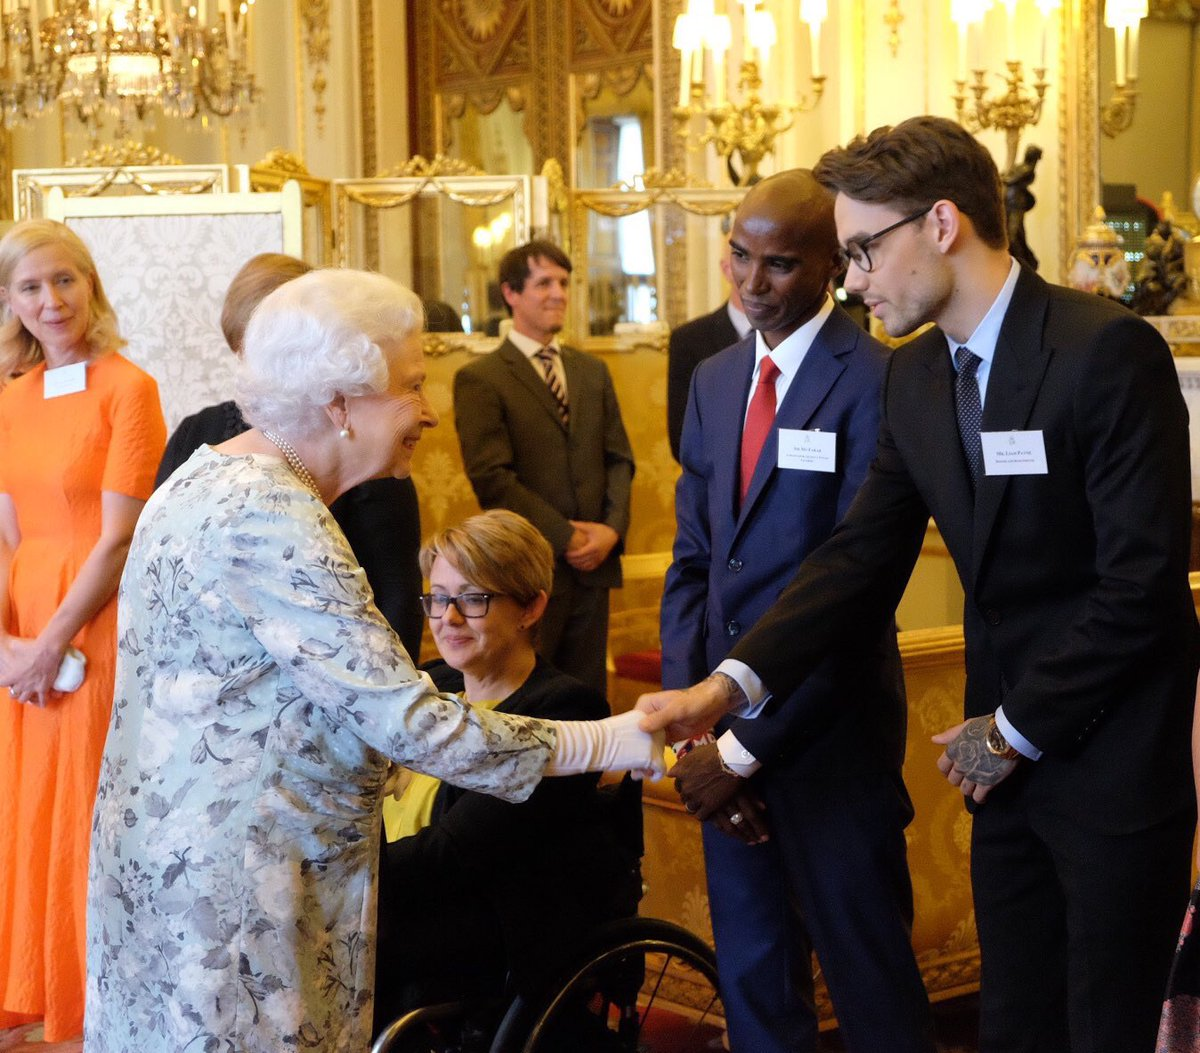 An absolute honour to meet the Queen today. Privileged to share the room with such inspirational @QueensLeaders and hear their stories 🙏🏼